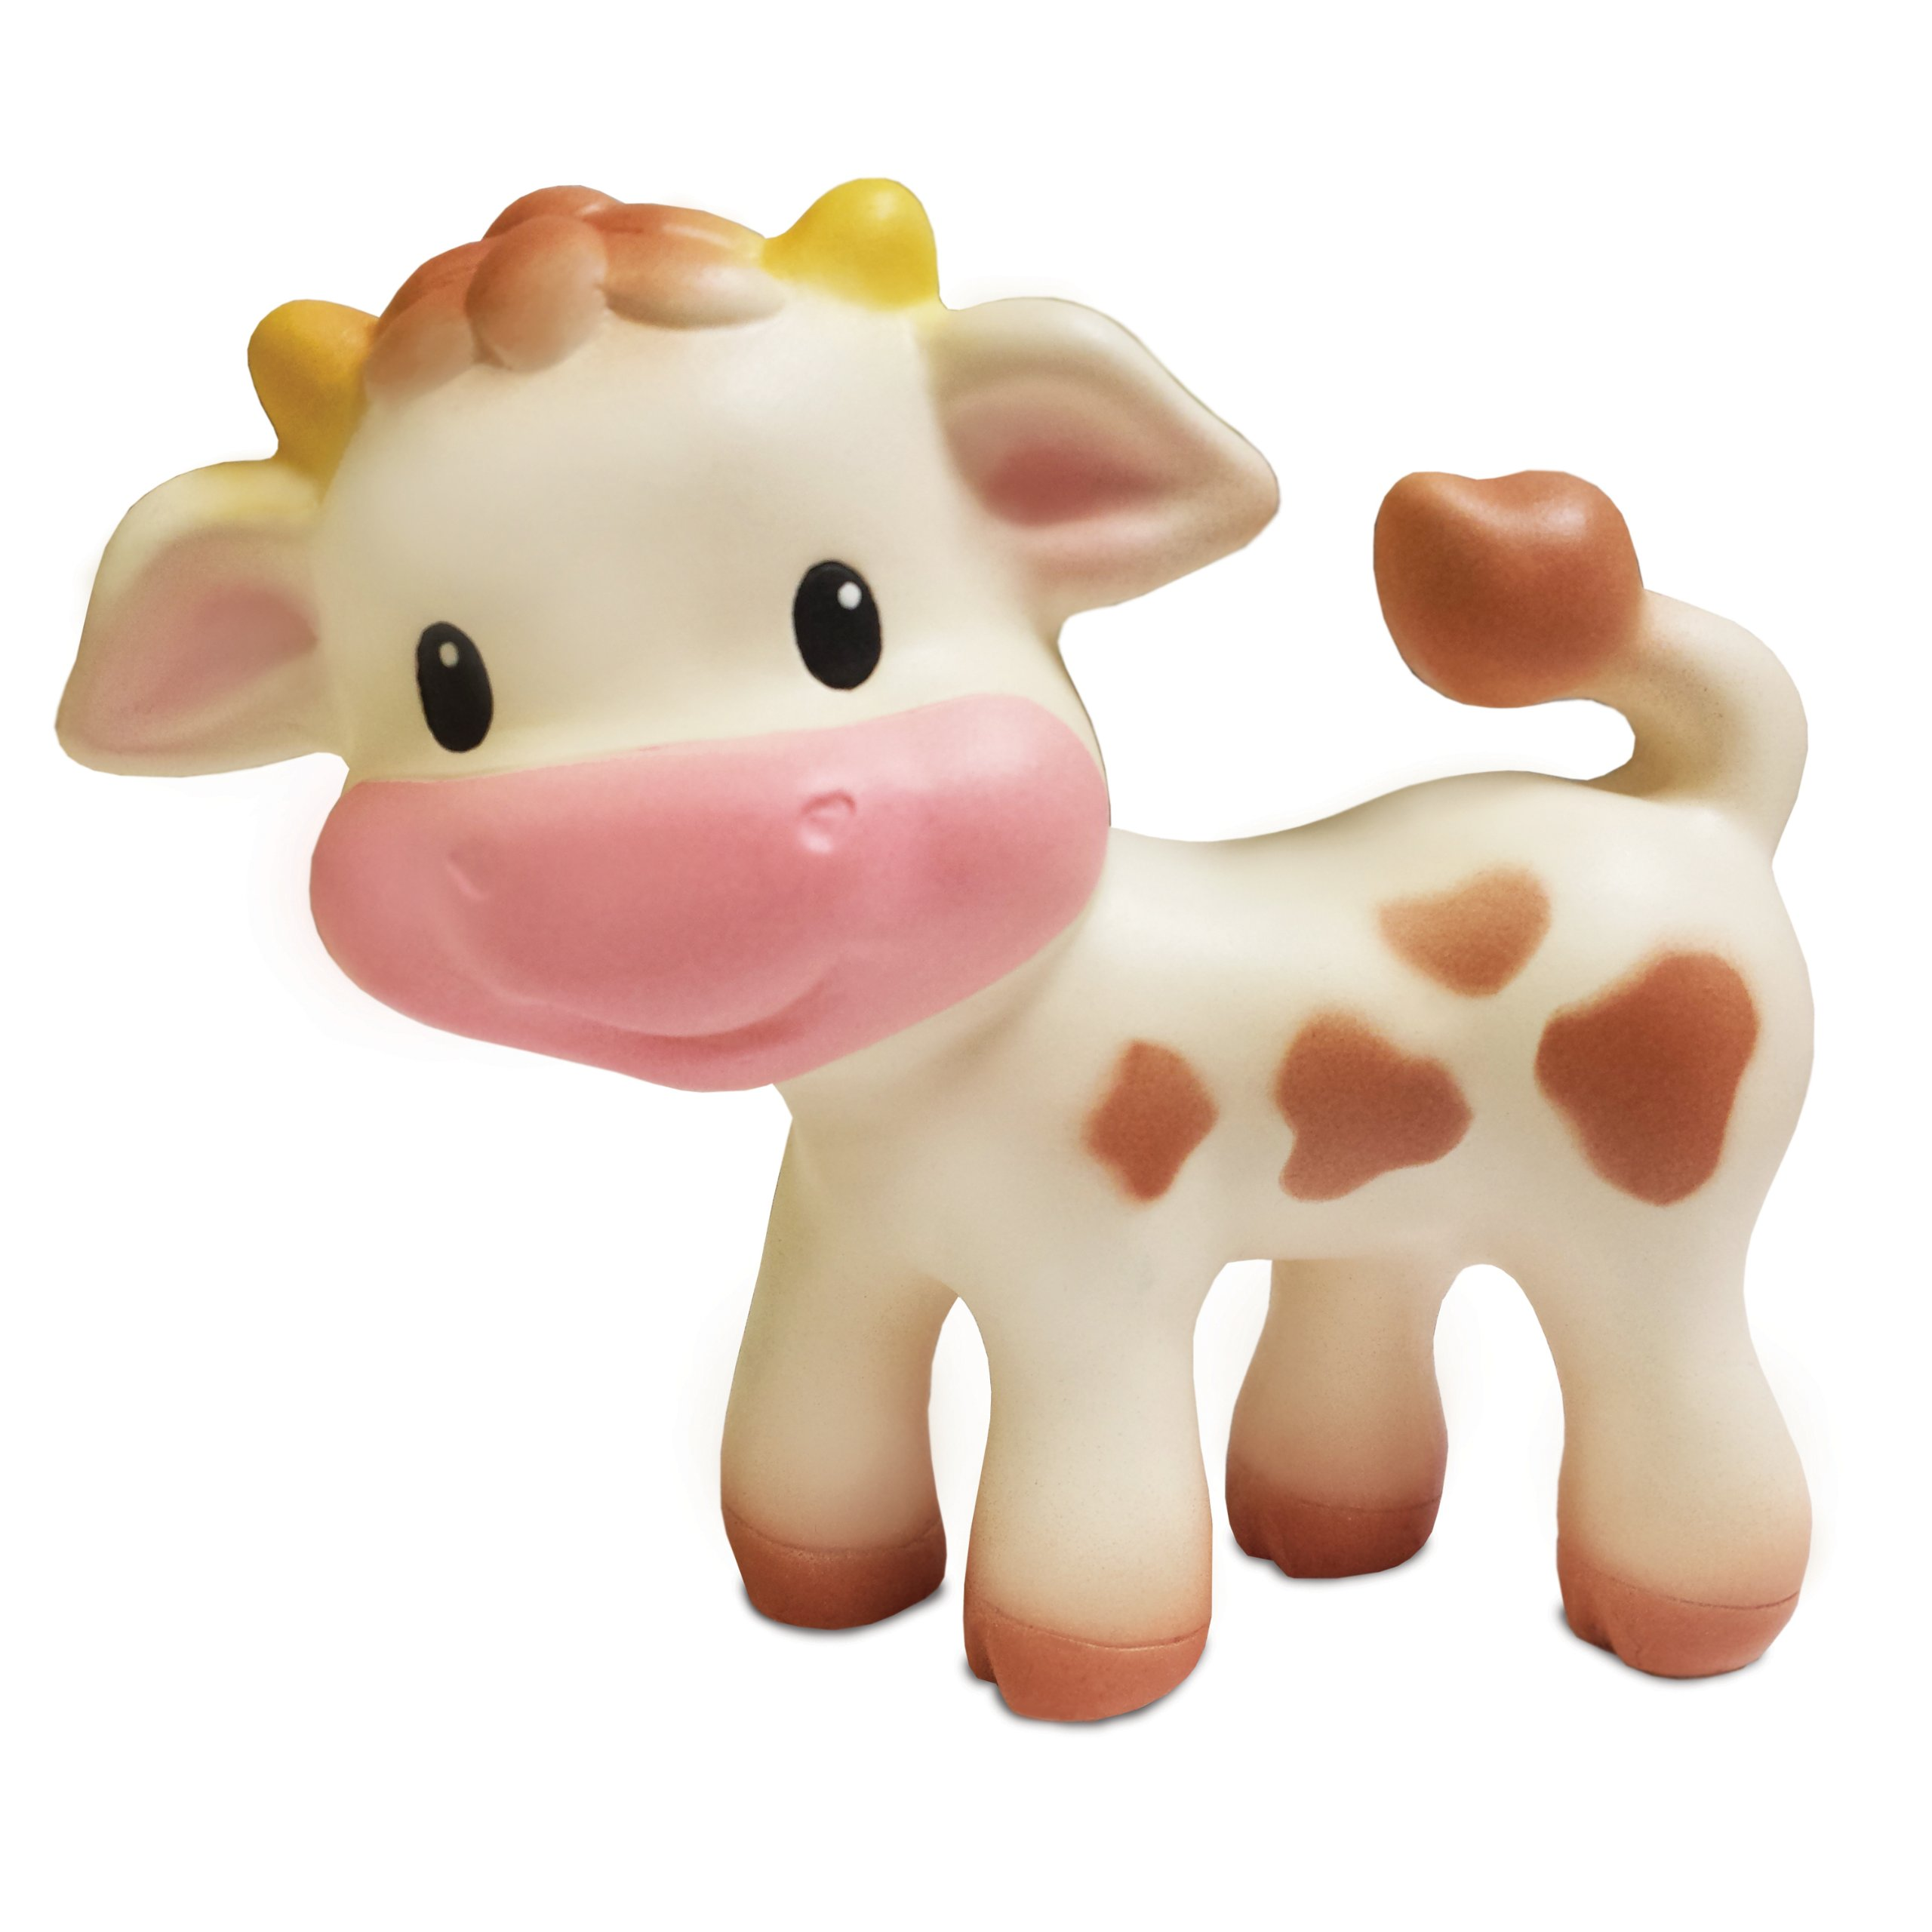 Infantino Teether Toy, Squeeze and TeeThe Cow